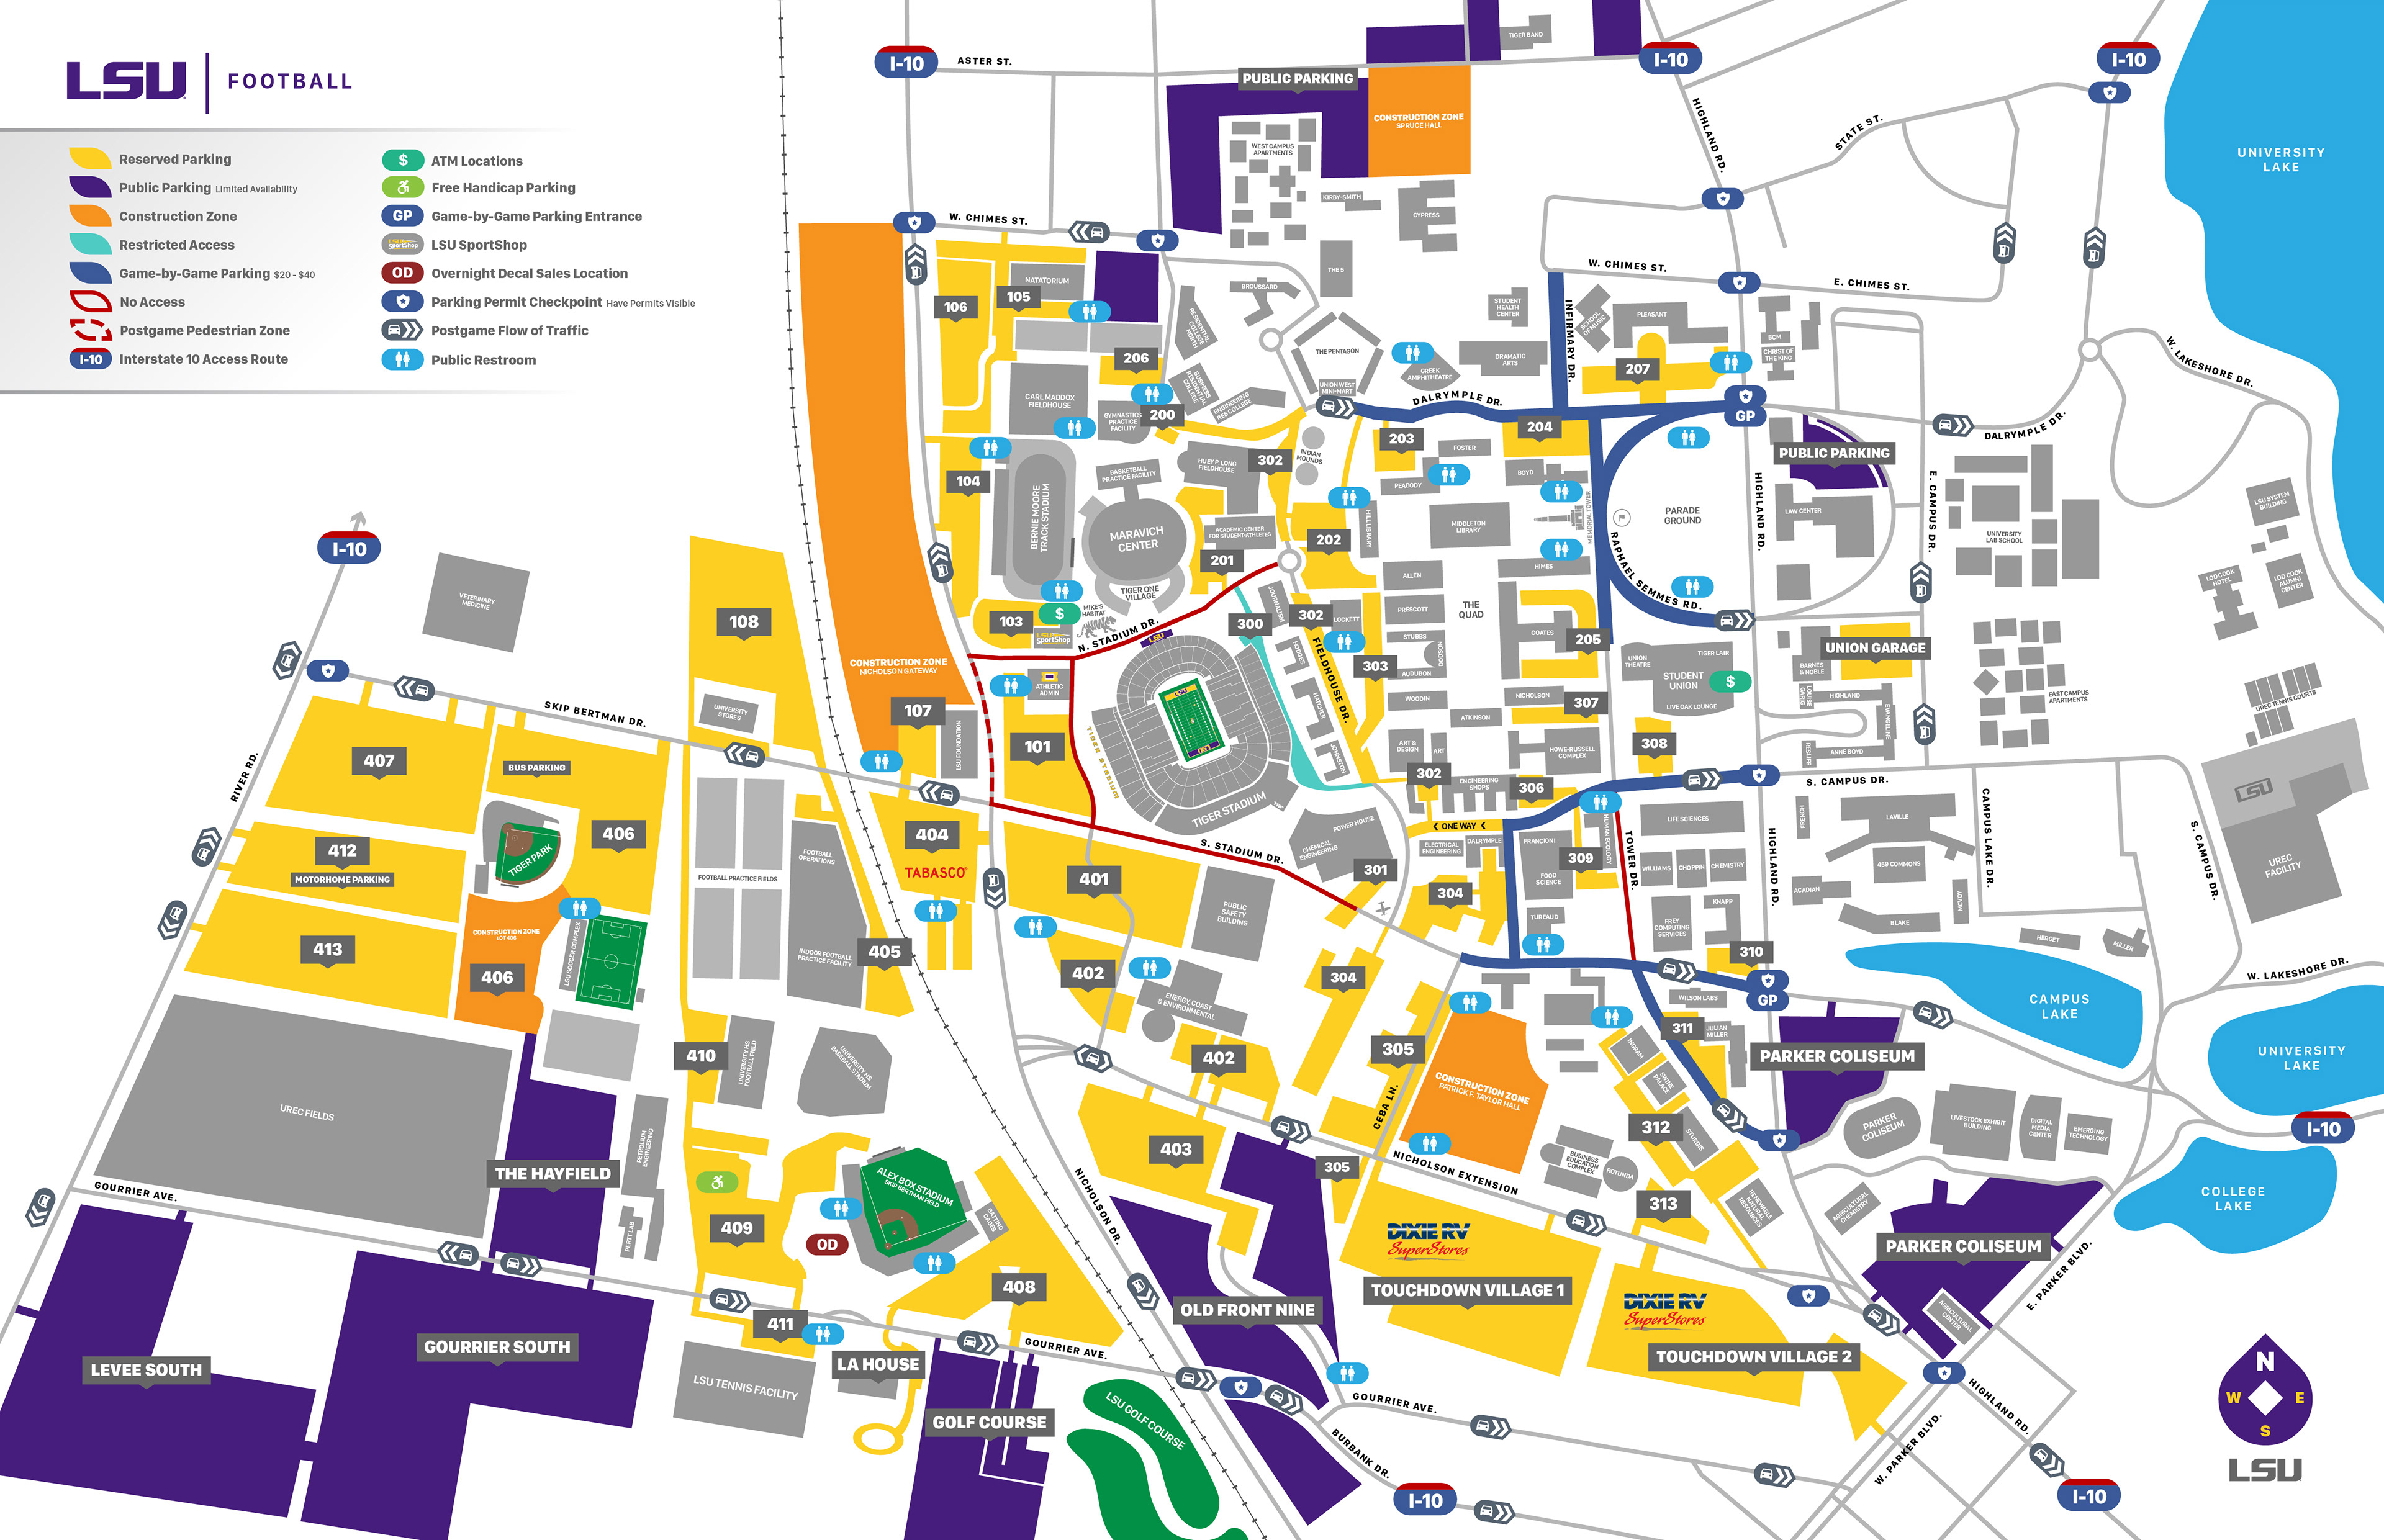 site map lsusportsnet the official web site of lsu - HD 3000×1941